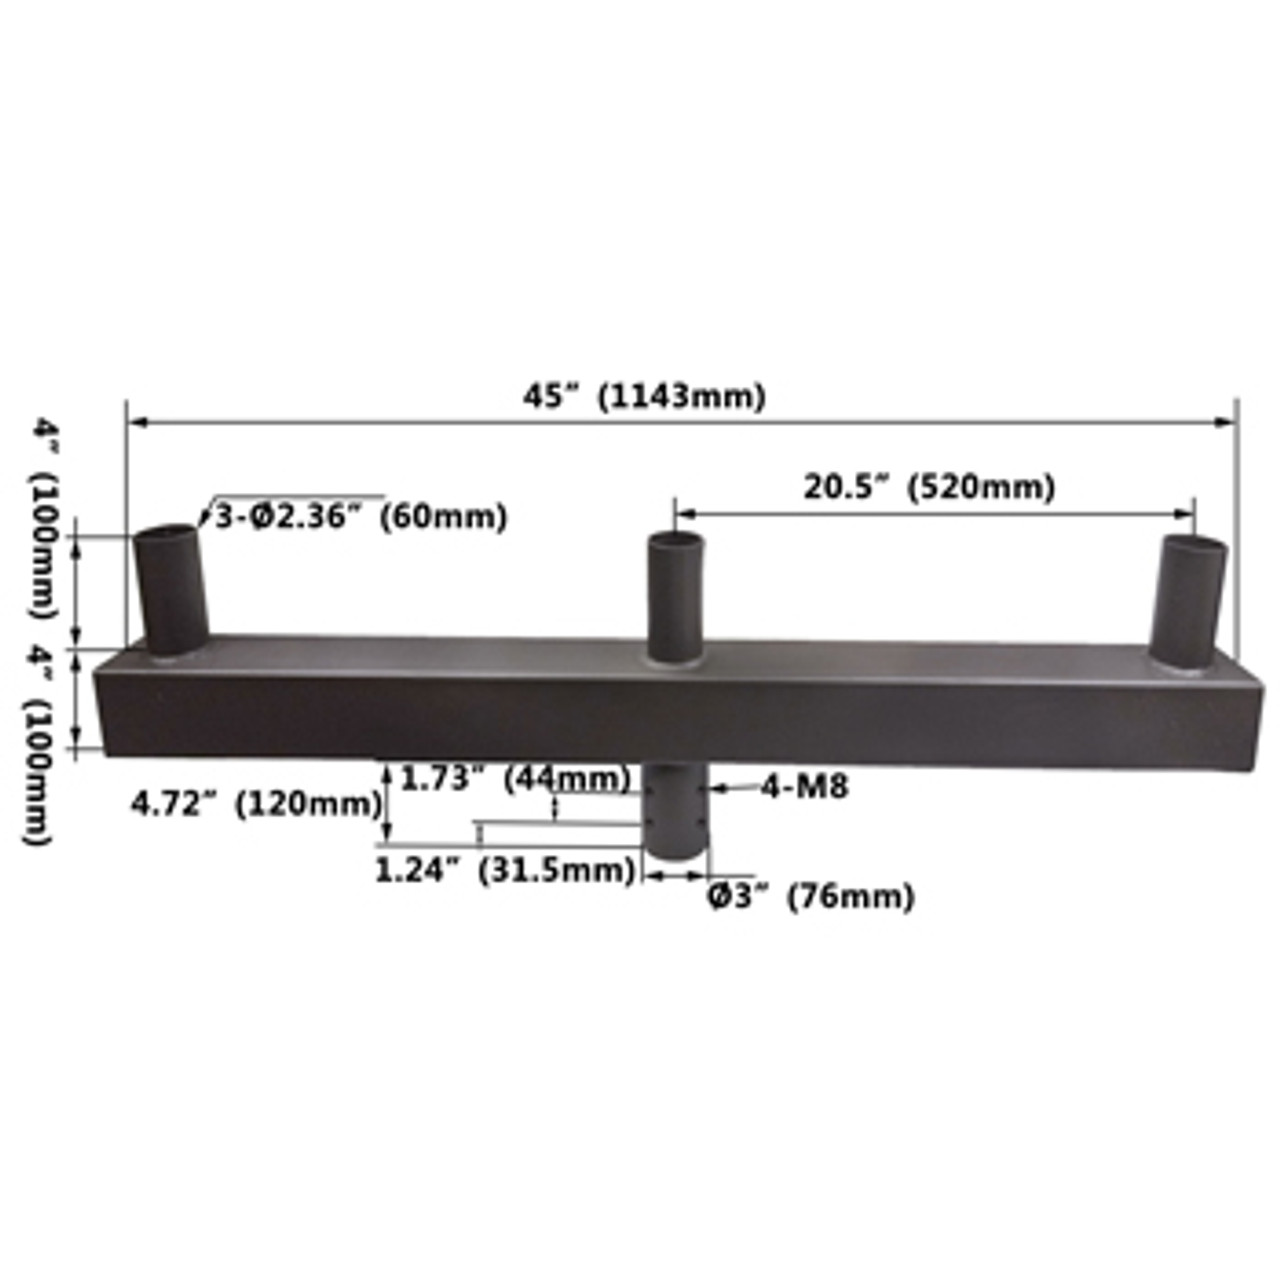 Triple Square Horizontal Bull Horn for 3 fixtures- dimensions